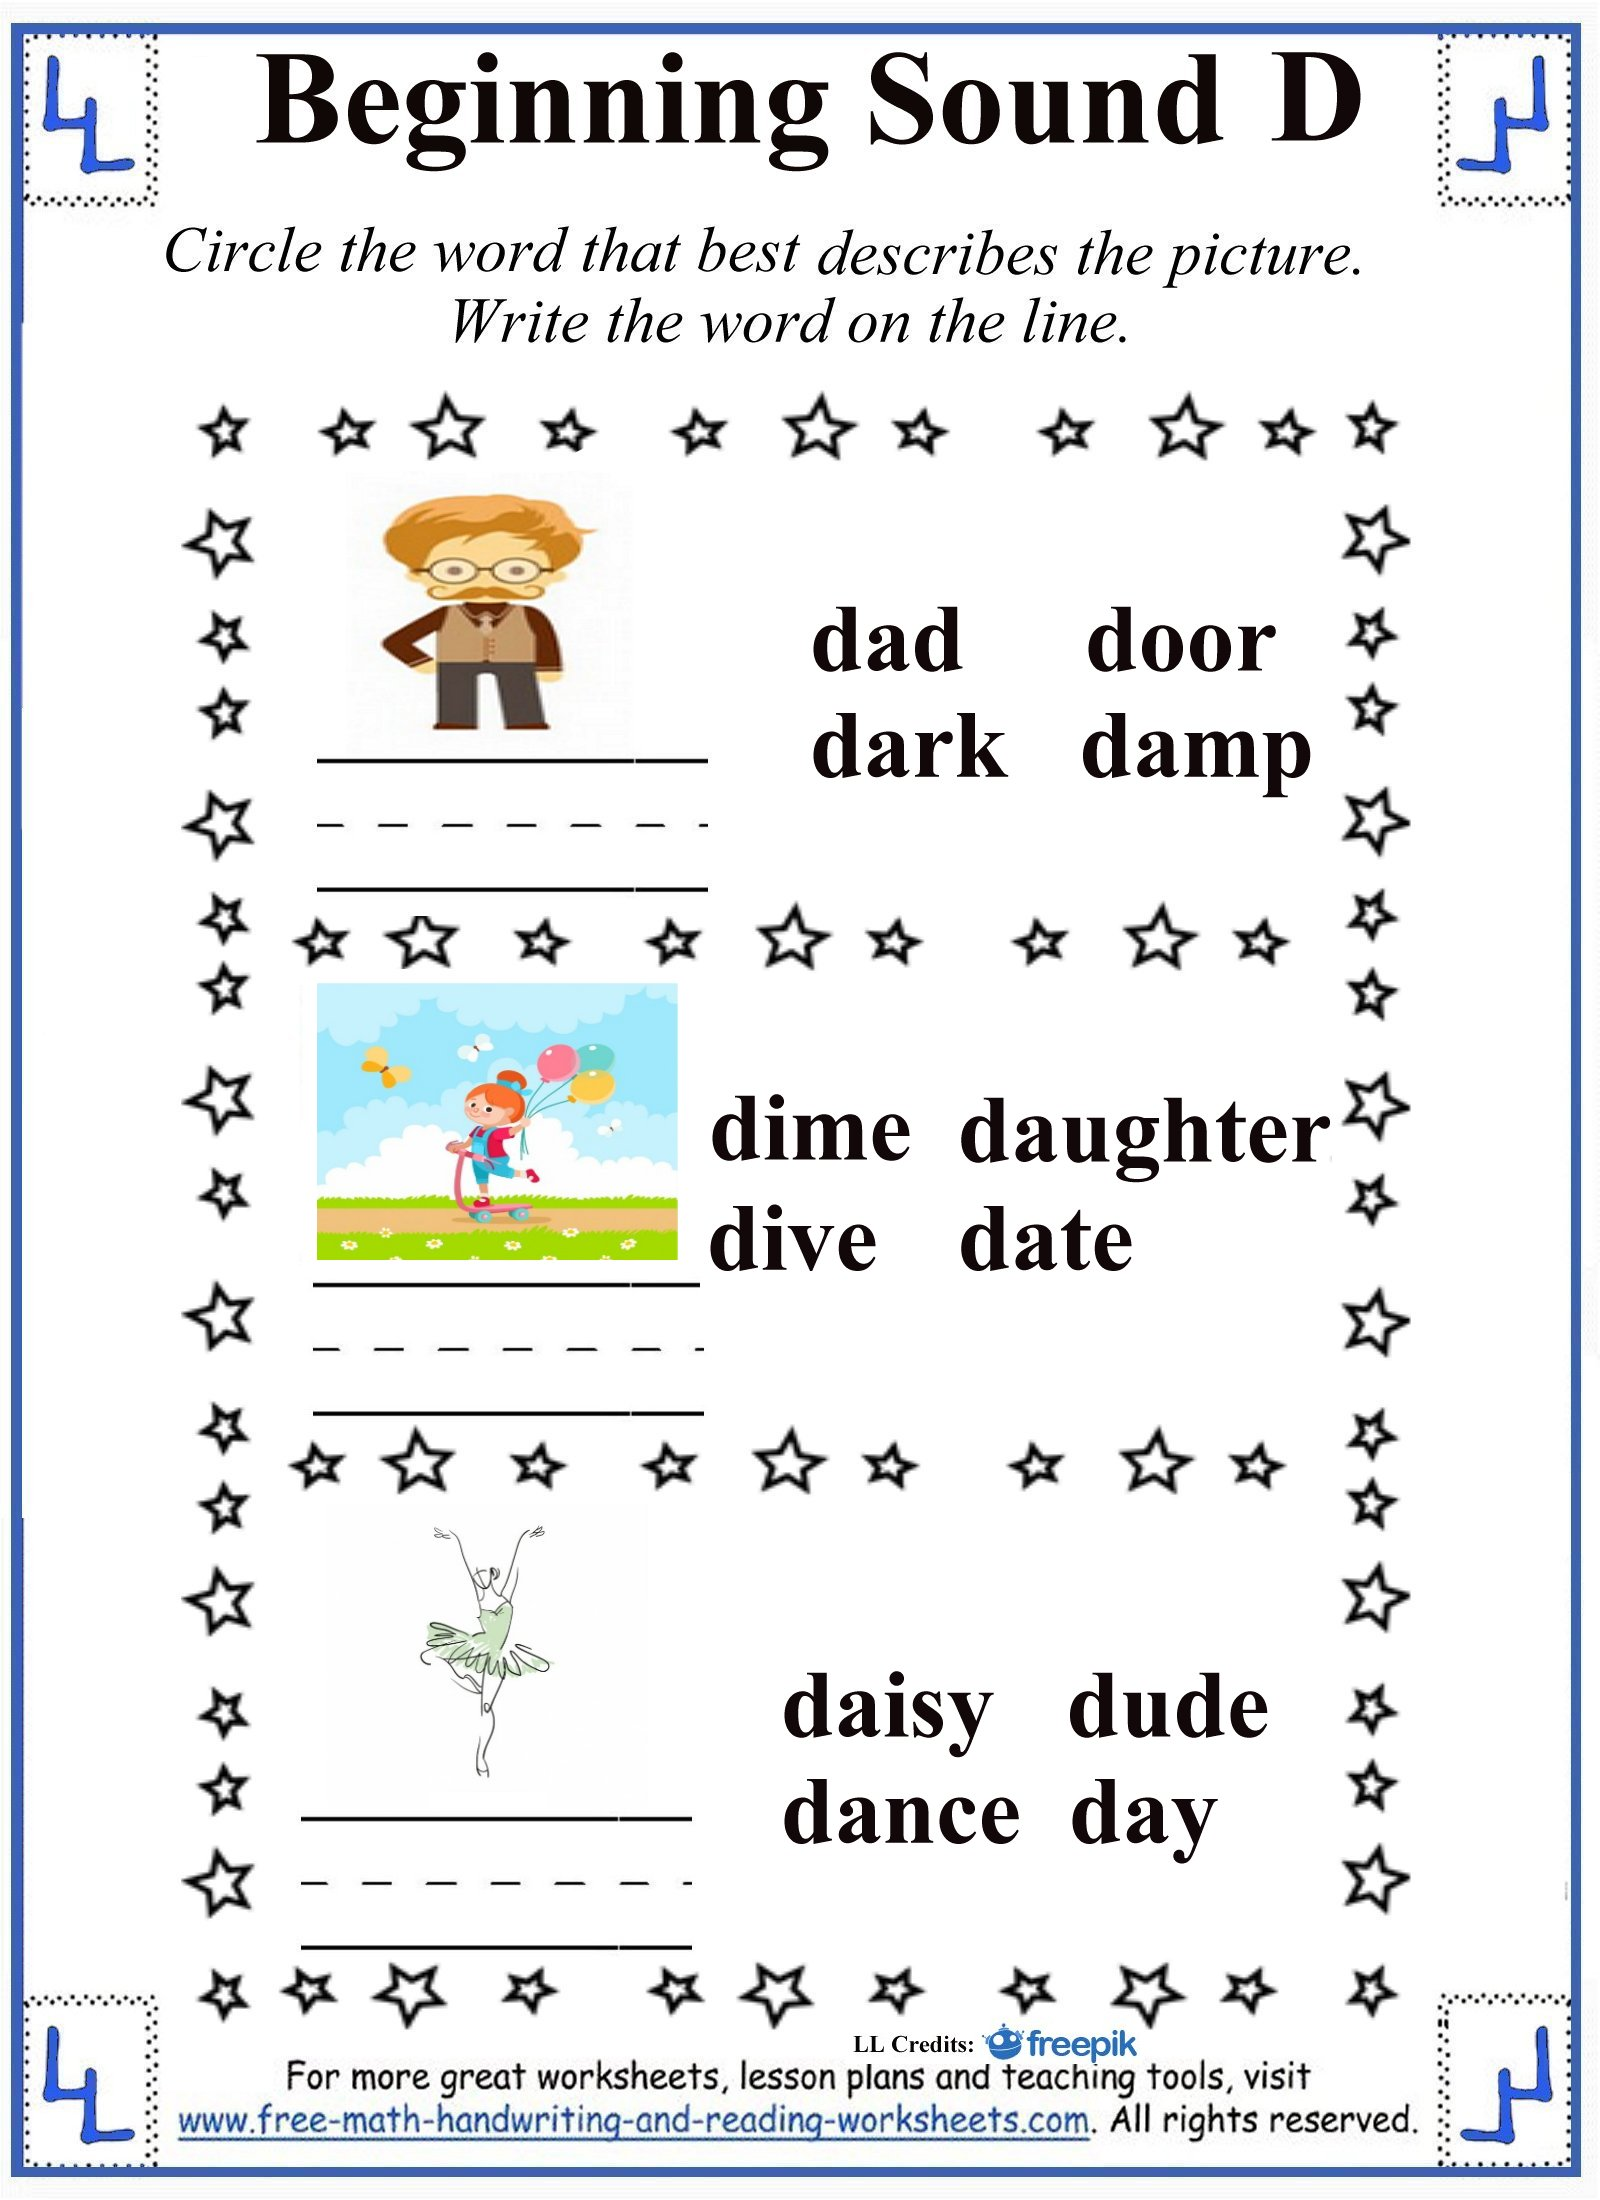 Worksheet Initial Letter Worksheets writing letter sounds worksheets busy miss kindergarten d worksheets